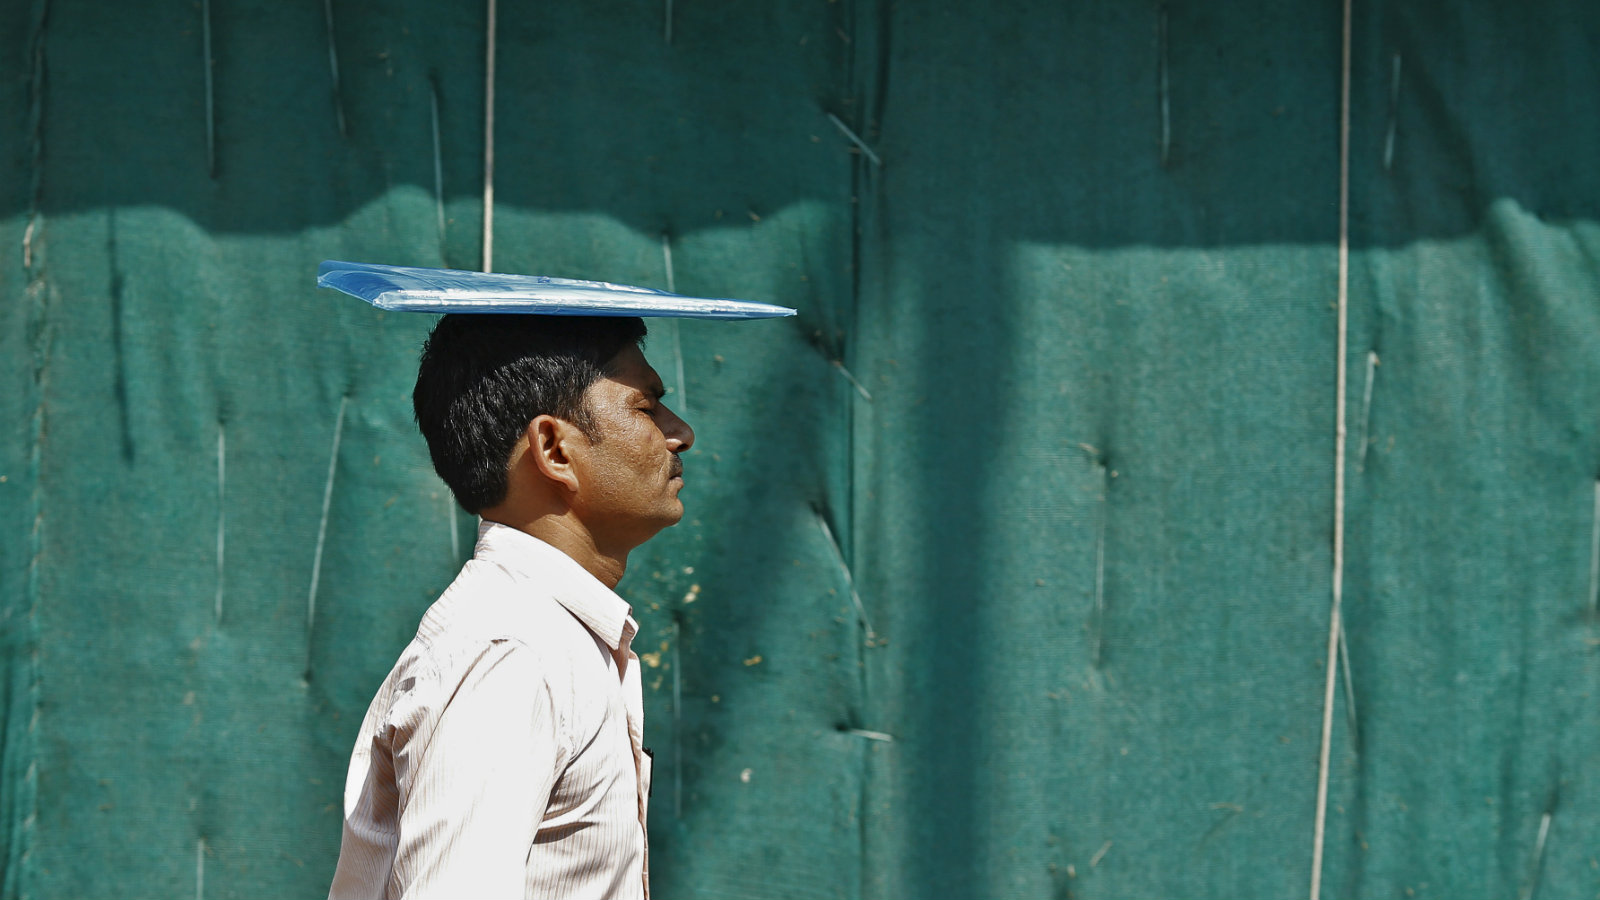 A man keeps a file folder on his head to protect himself from the sun during a hot summer day in New Delhi, India, June 8, 2015. Temperature in New Delhi on Monday is expected to reach 43 Celsius (109.4 degree Fahrenheit), according to India's metrological department website.